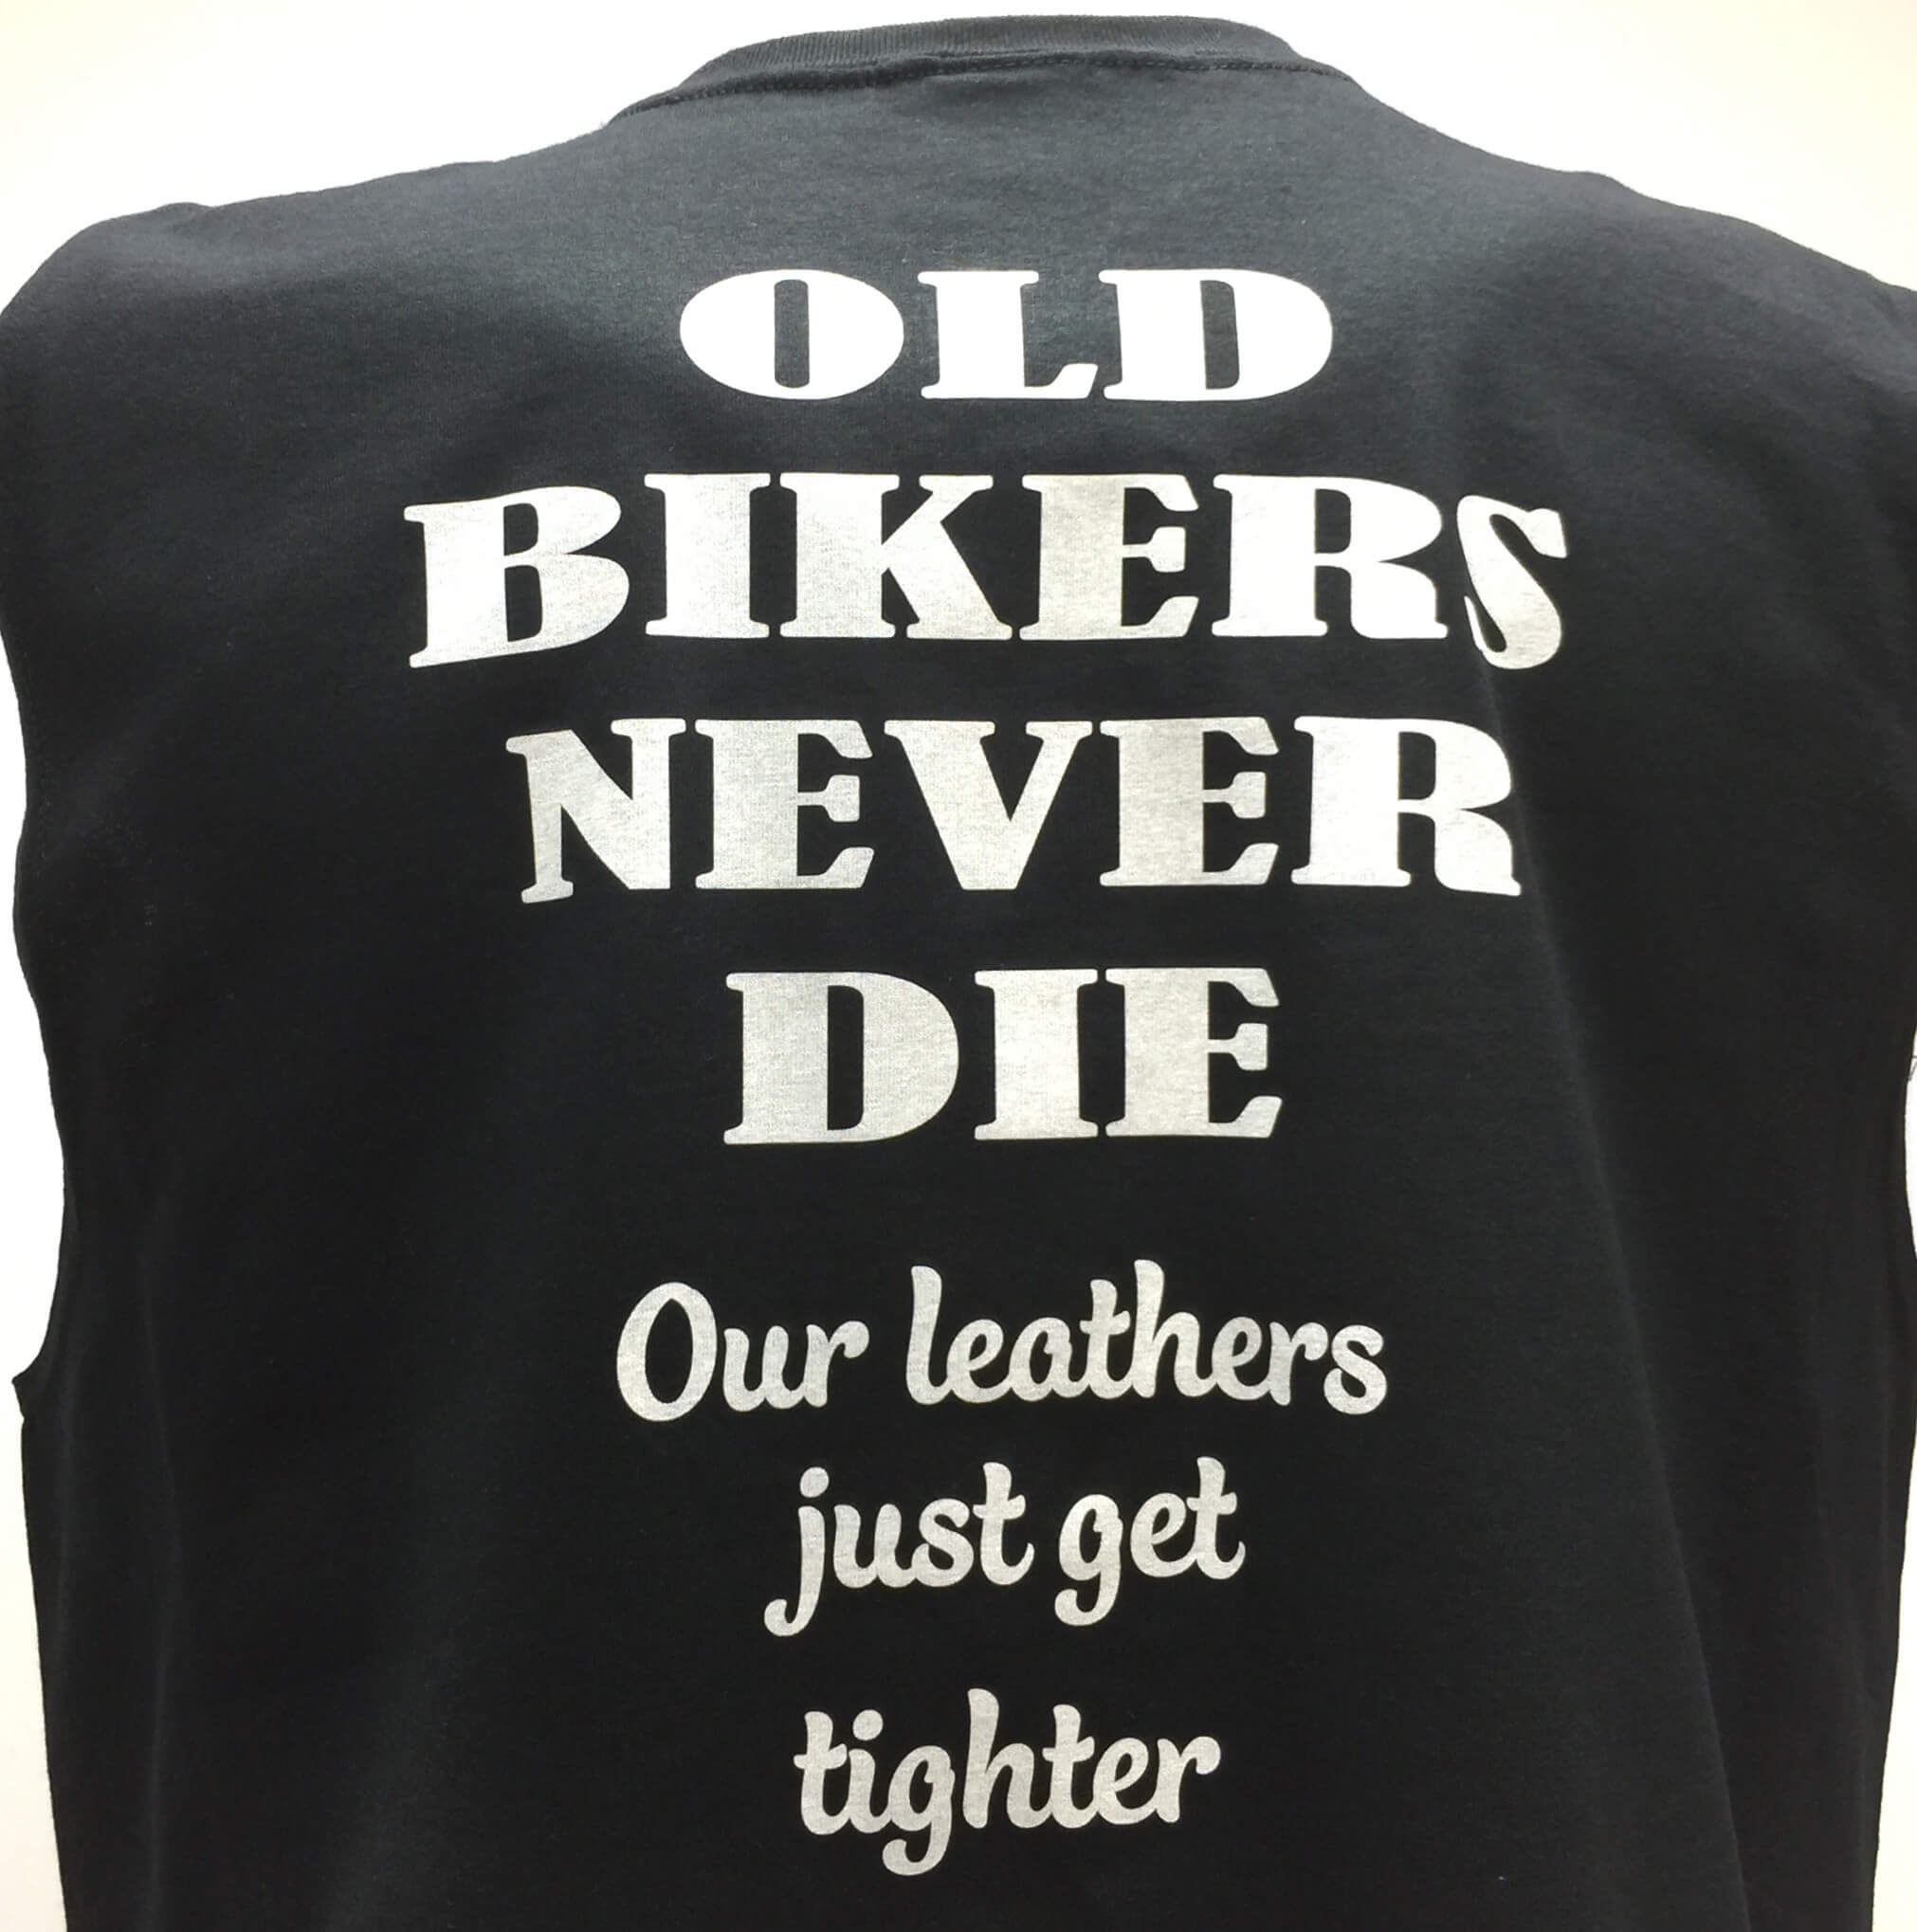 old-bikers-never-die-our-leathers-just-get-tighter-shirt.jpg